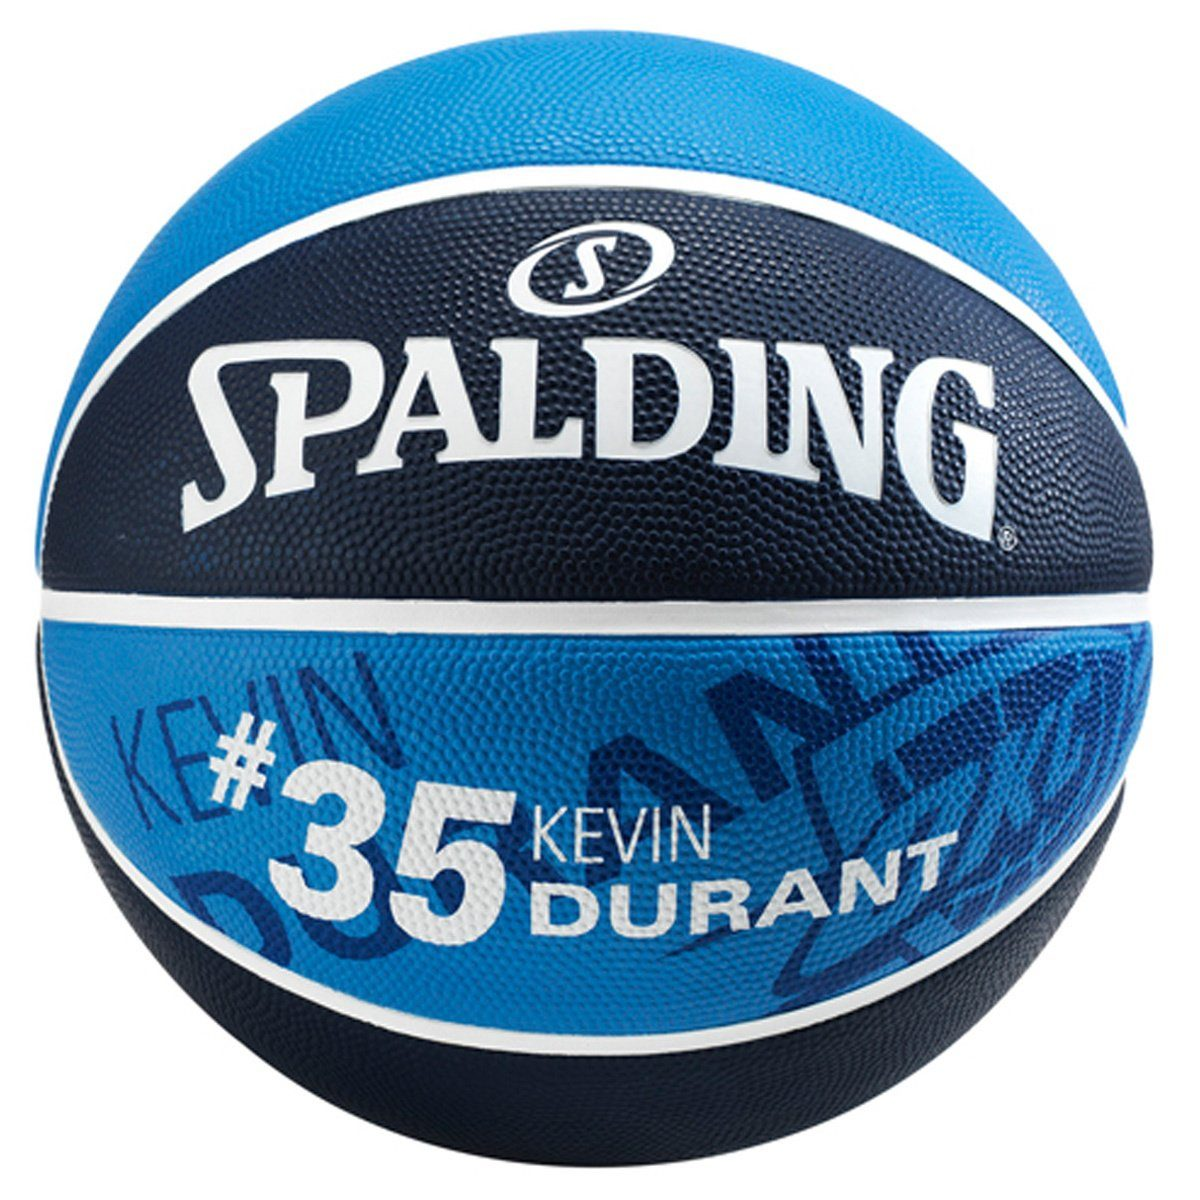 SPALDING NBA Player Kevin Durant Basketball